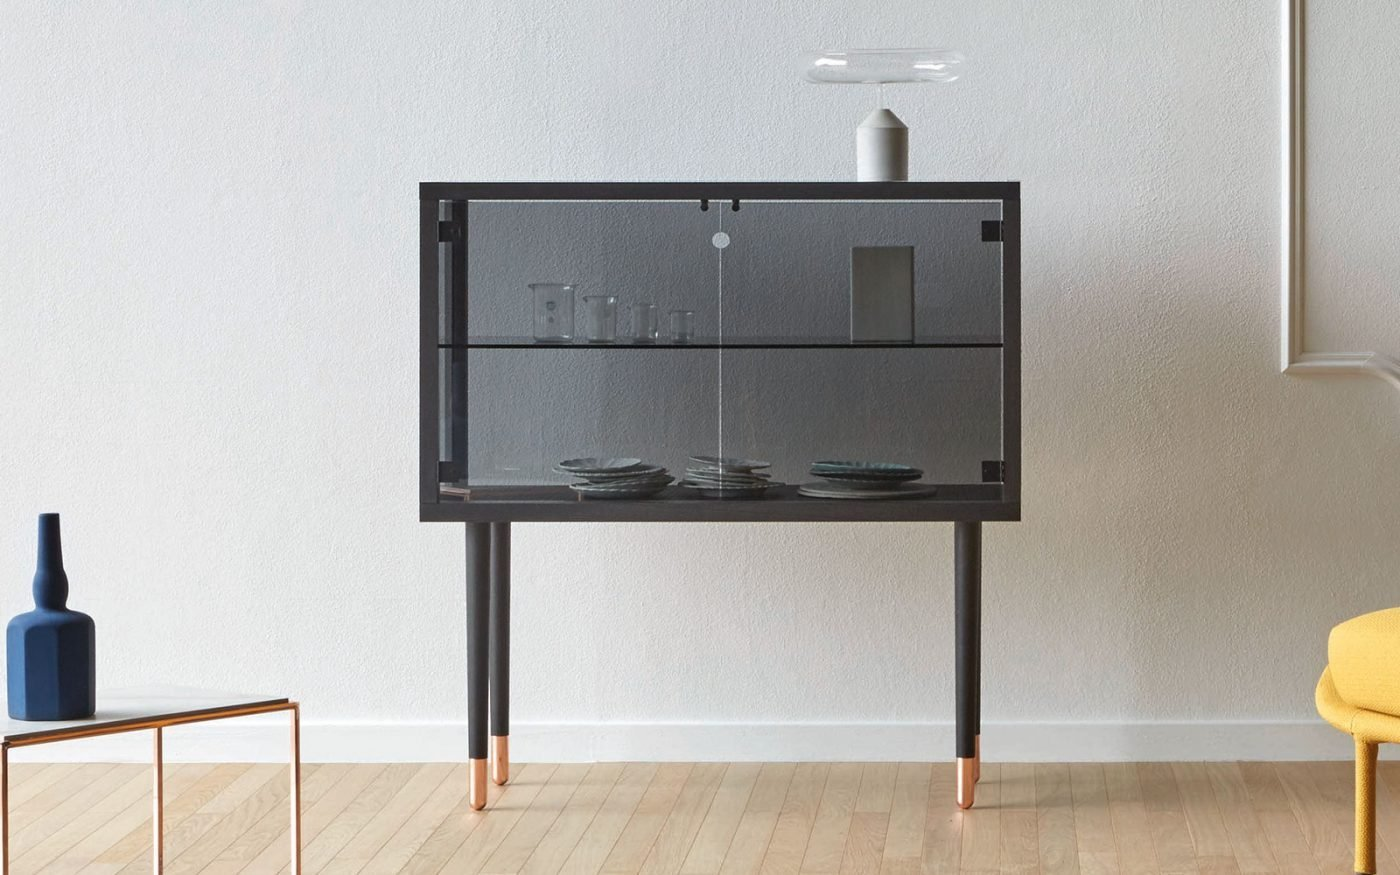 juno-glass-display-unit